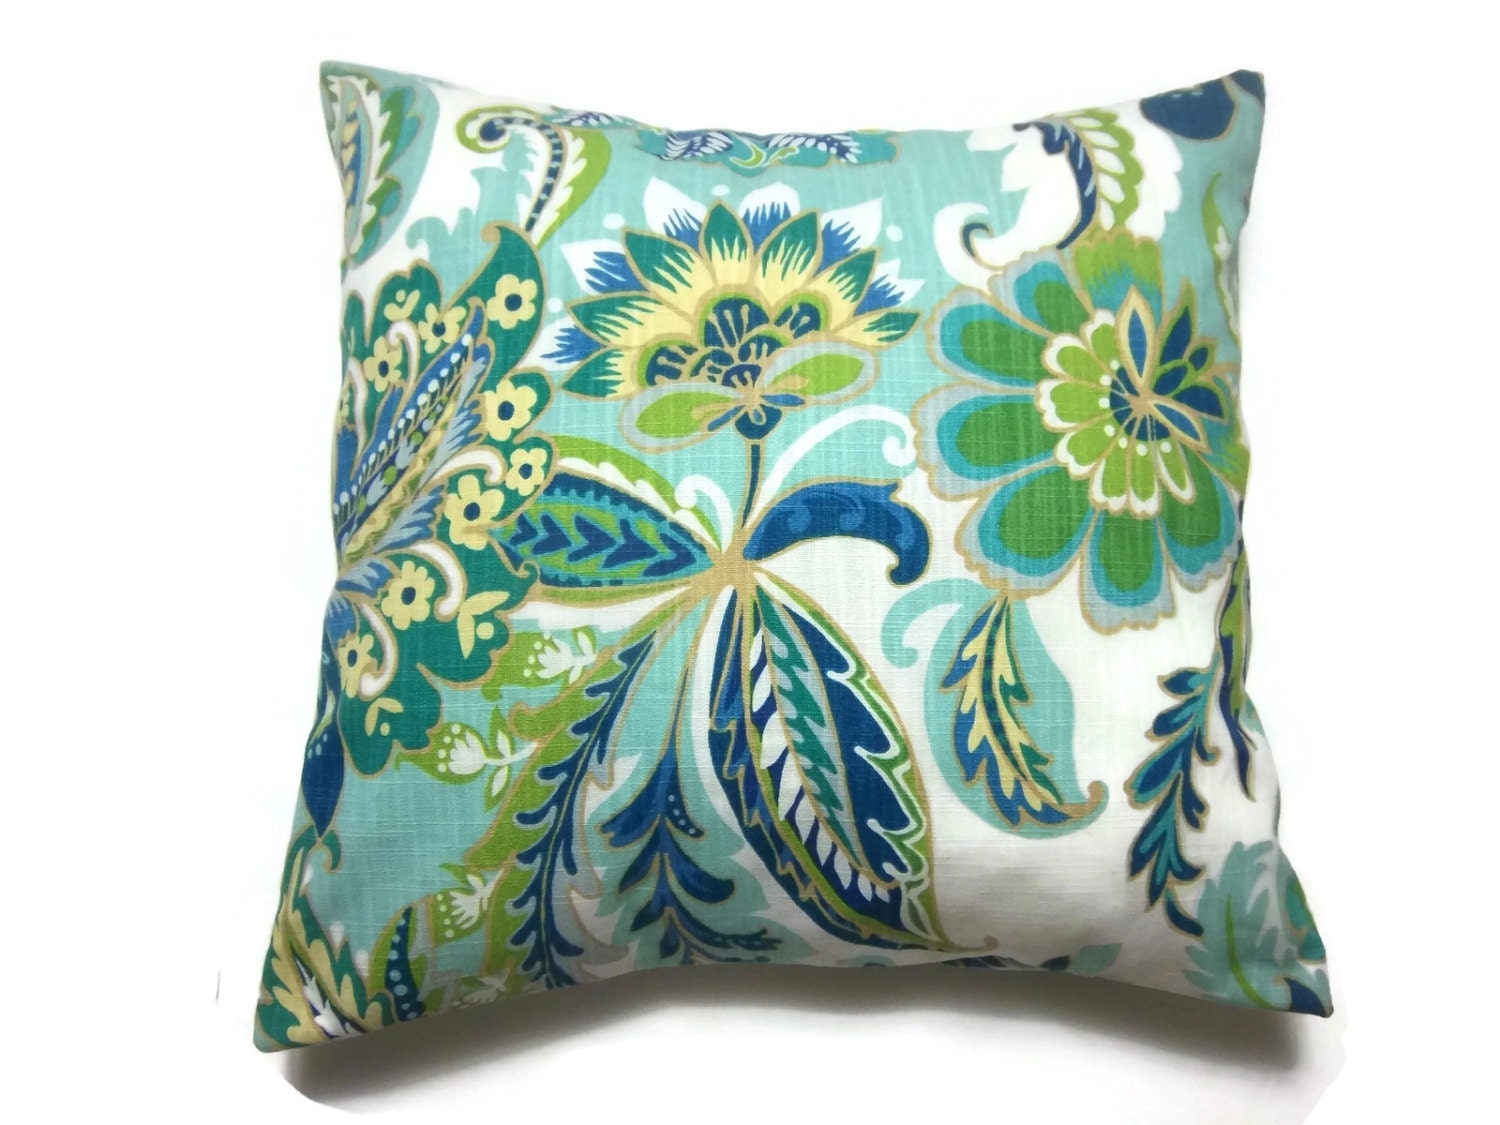 Decorative Pillow Cover Shades of Blue Green Yellow White